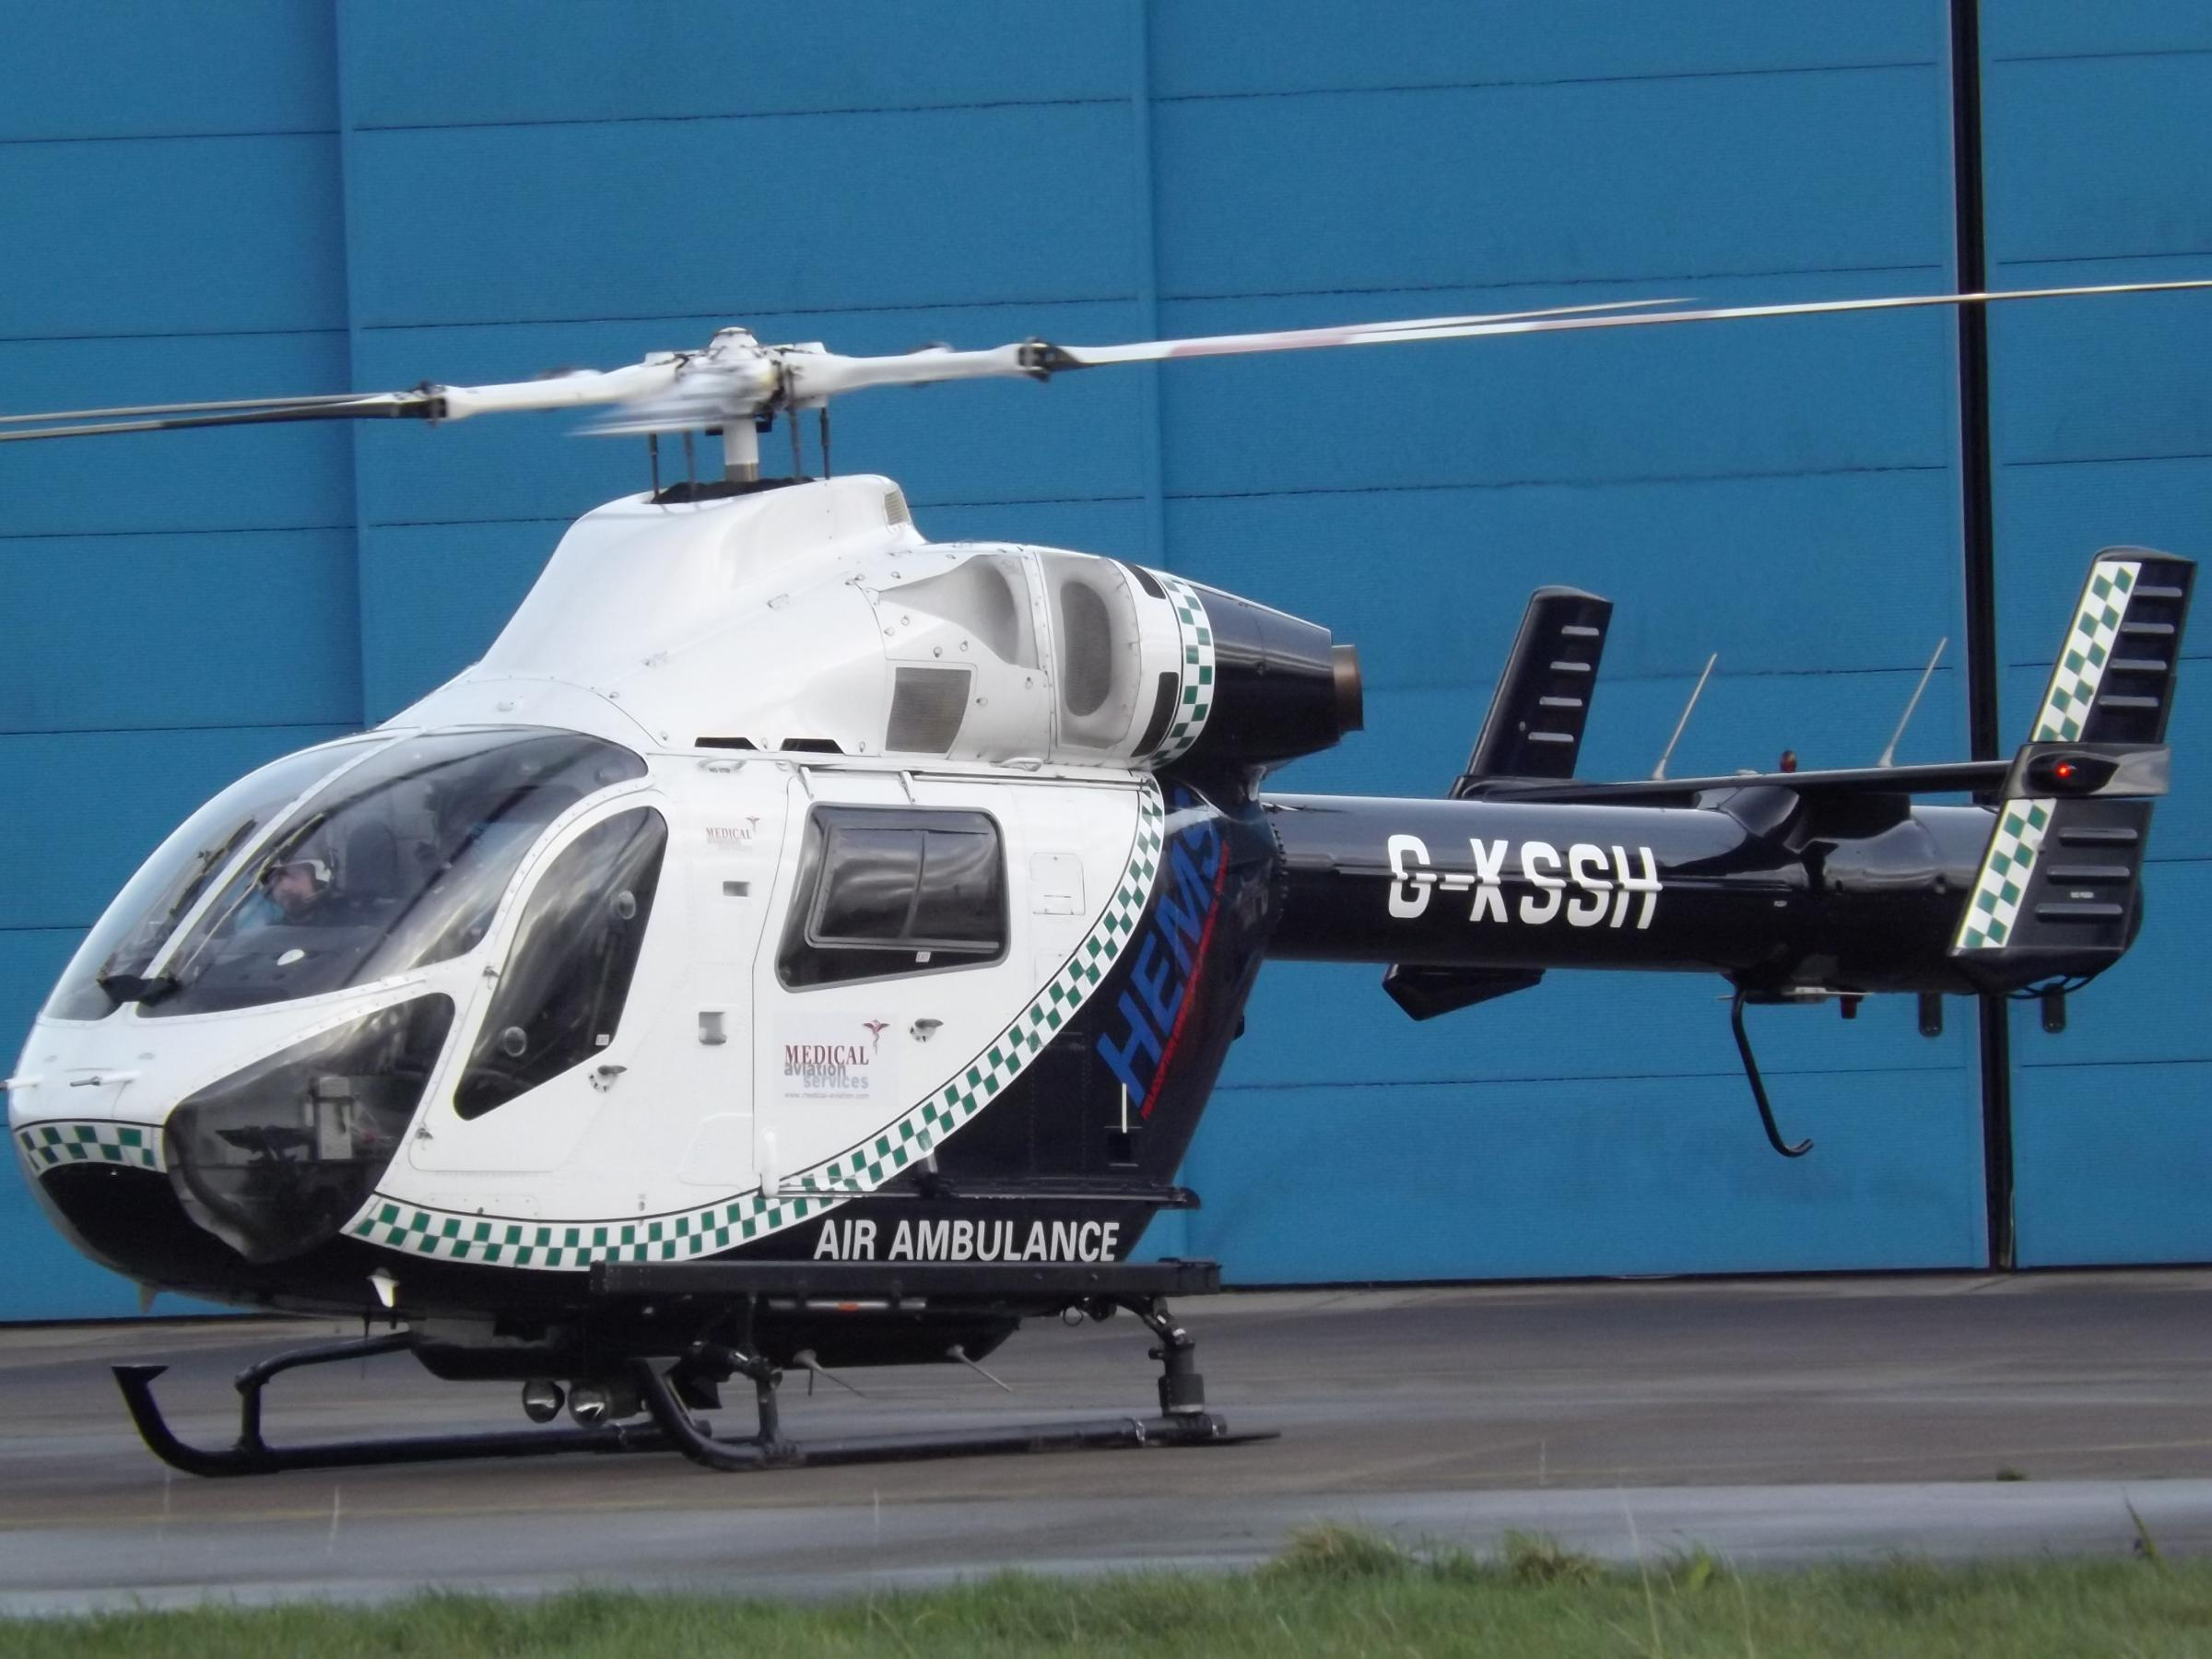 MD 902 replacement air ambulance